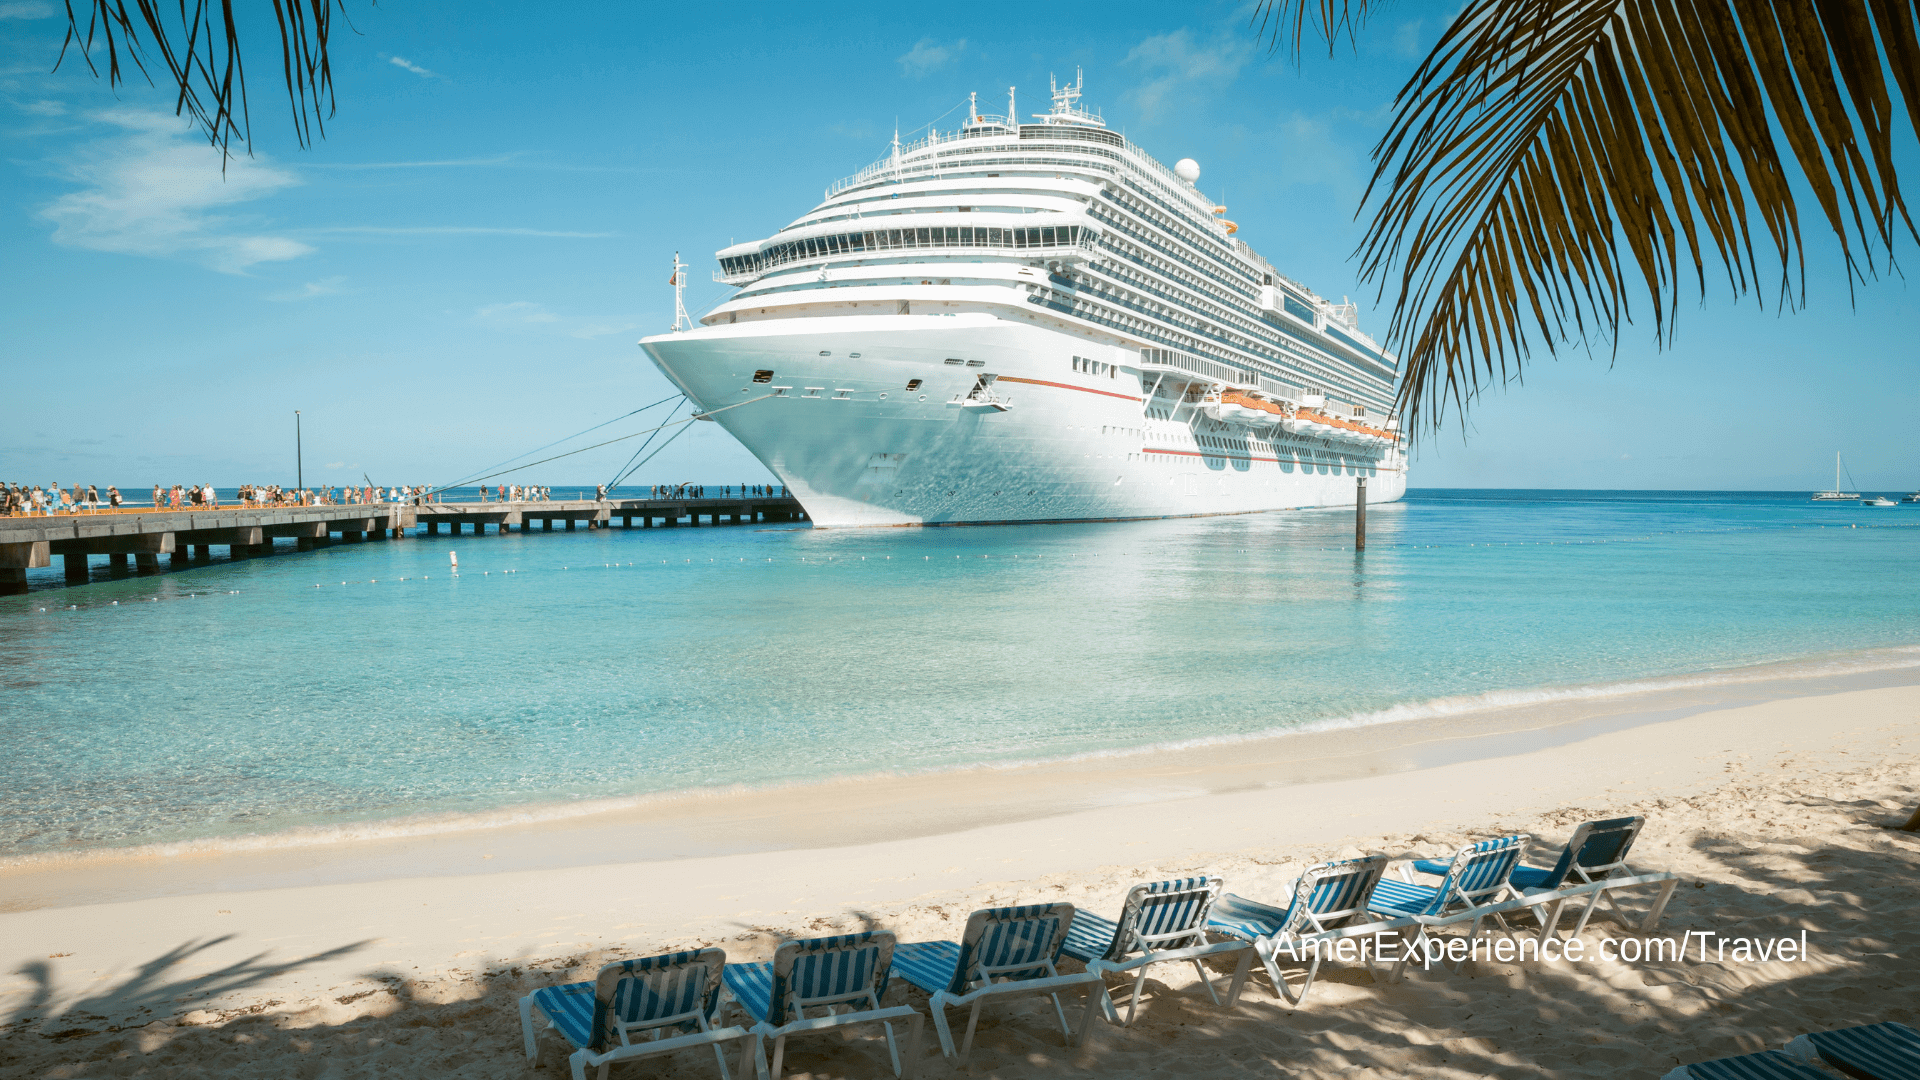 'We haven't recovered yet': Short-term outlook remains grim for cruise industry